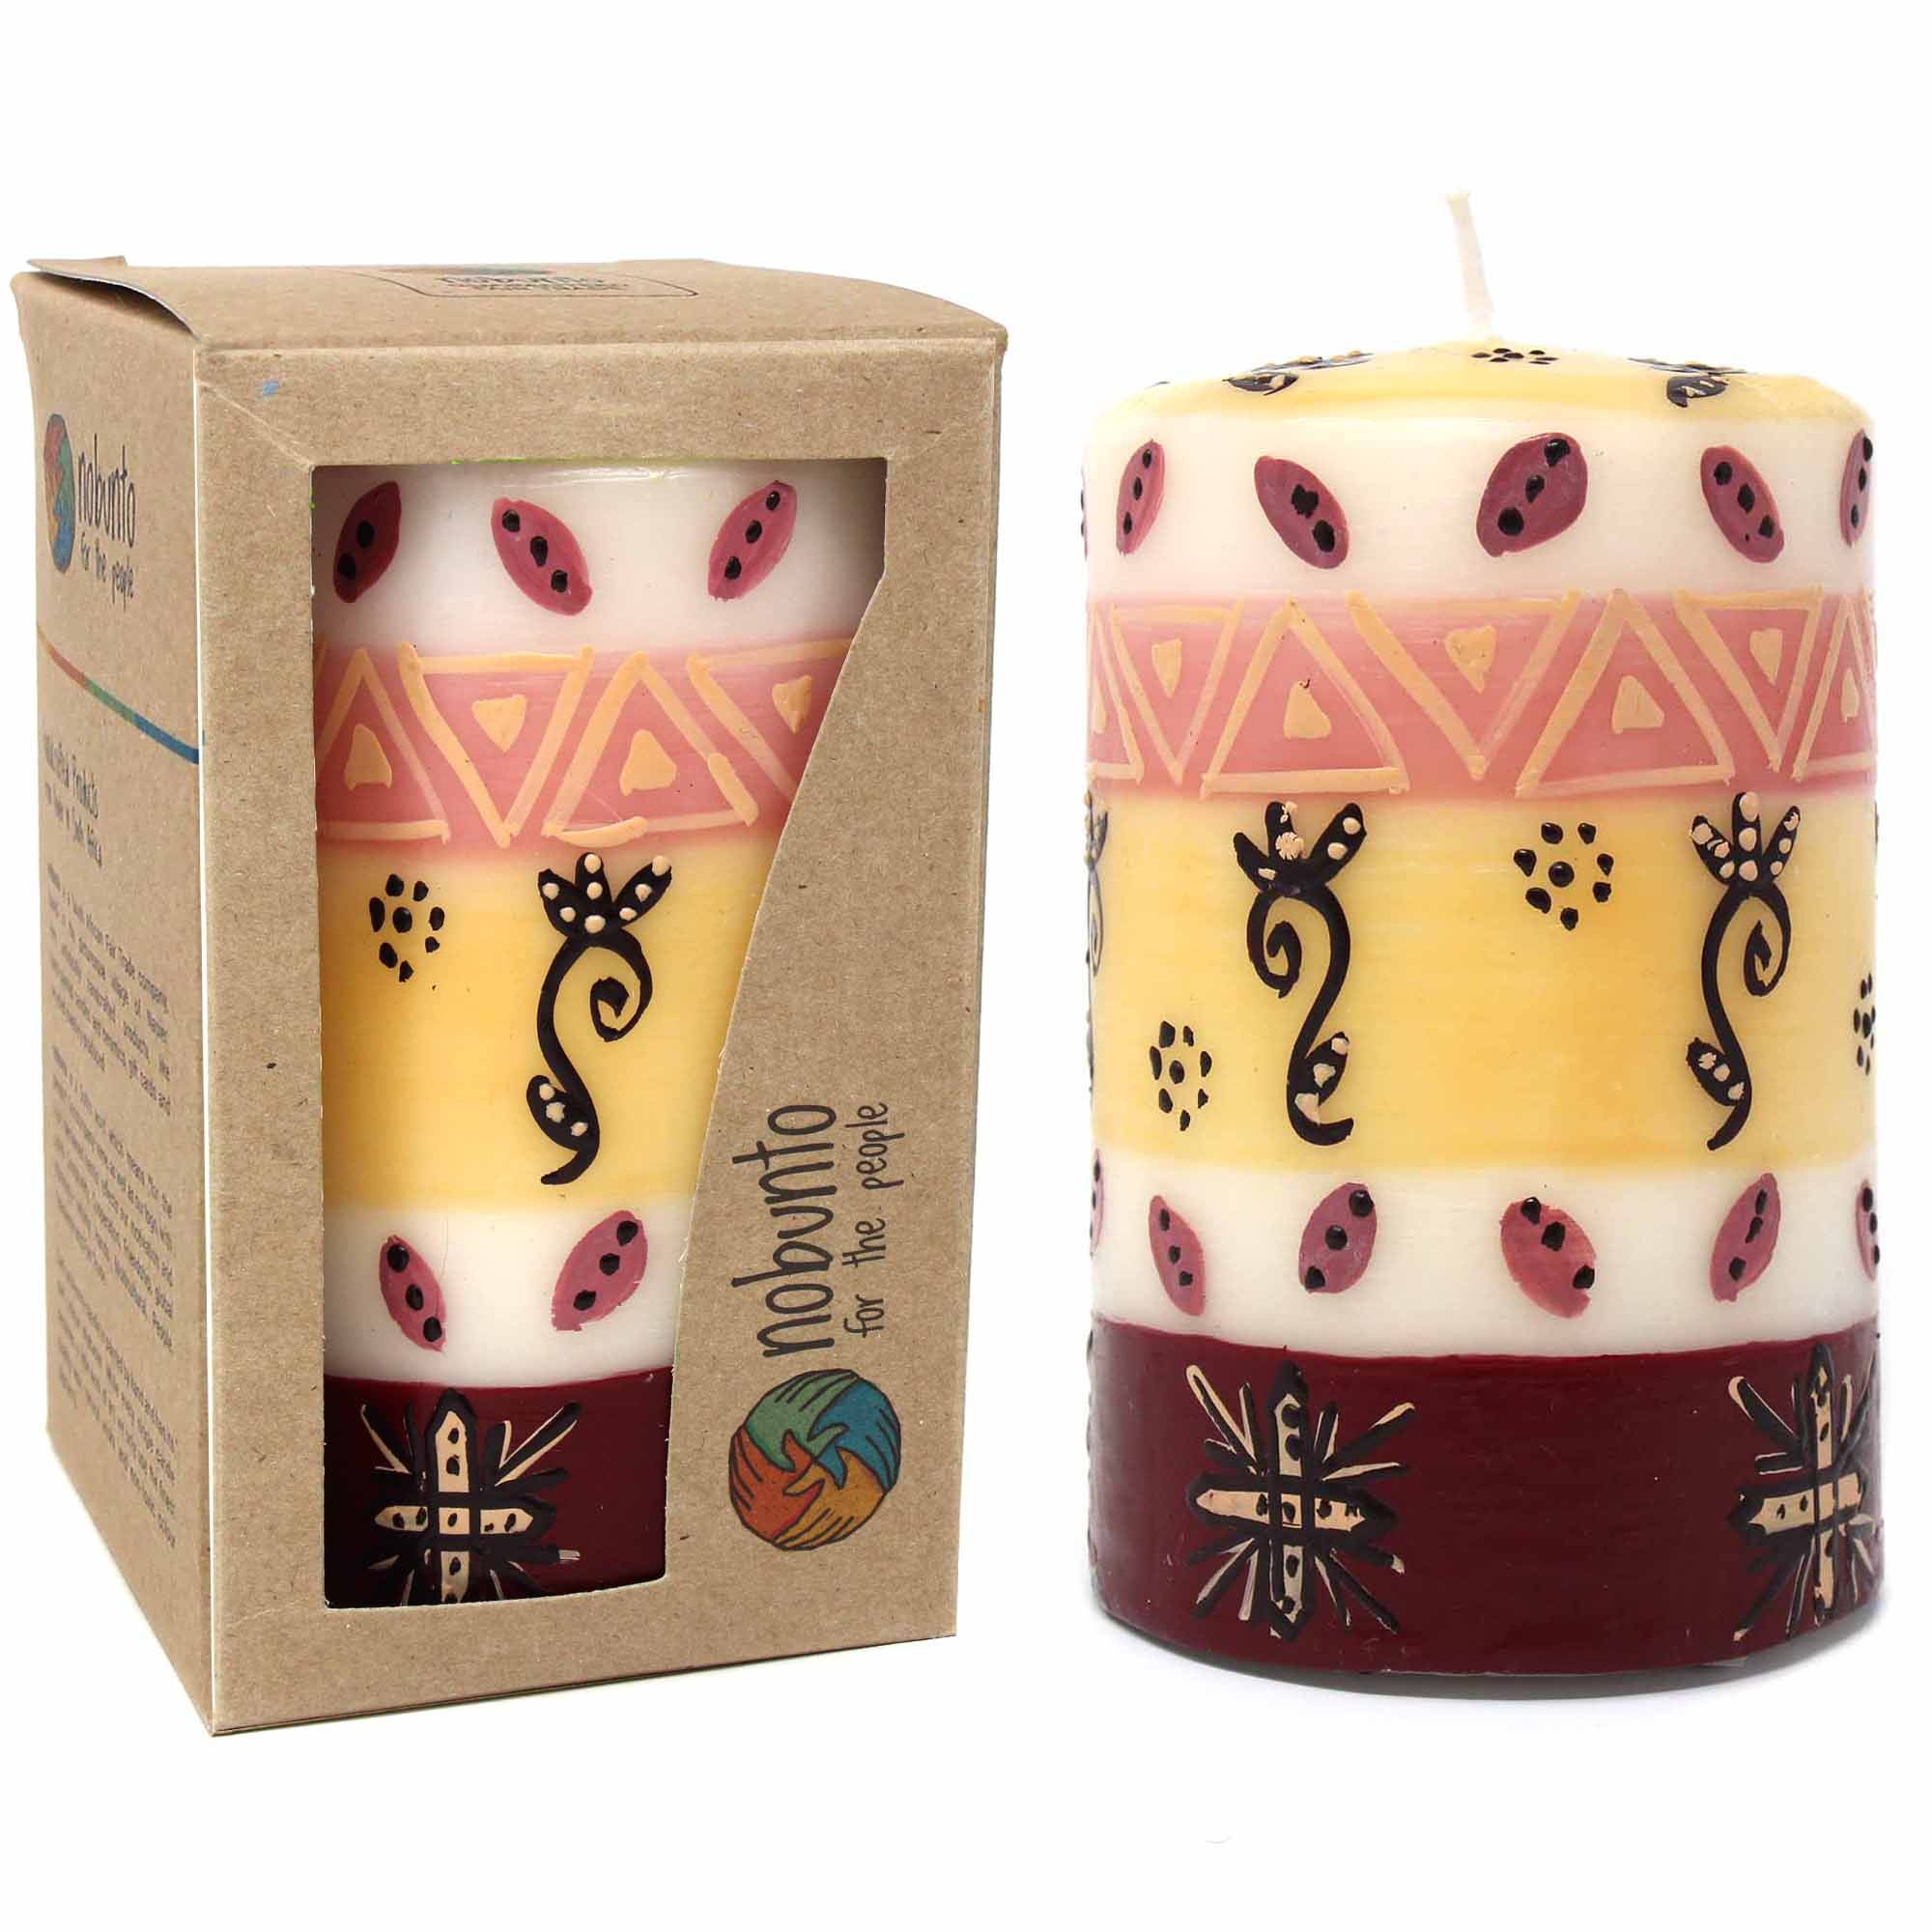 Hand-Painted Pillar Candle in Gift Box, 4-inch (Halisi Design)